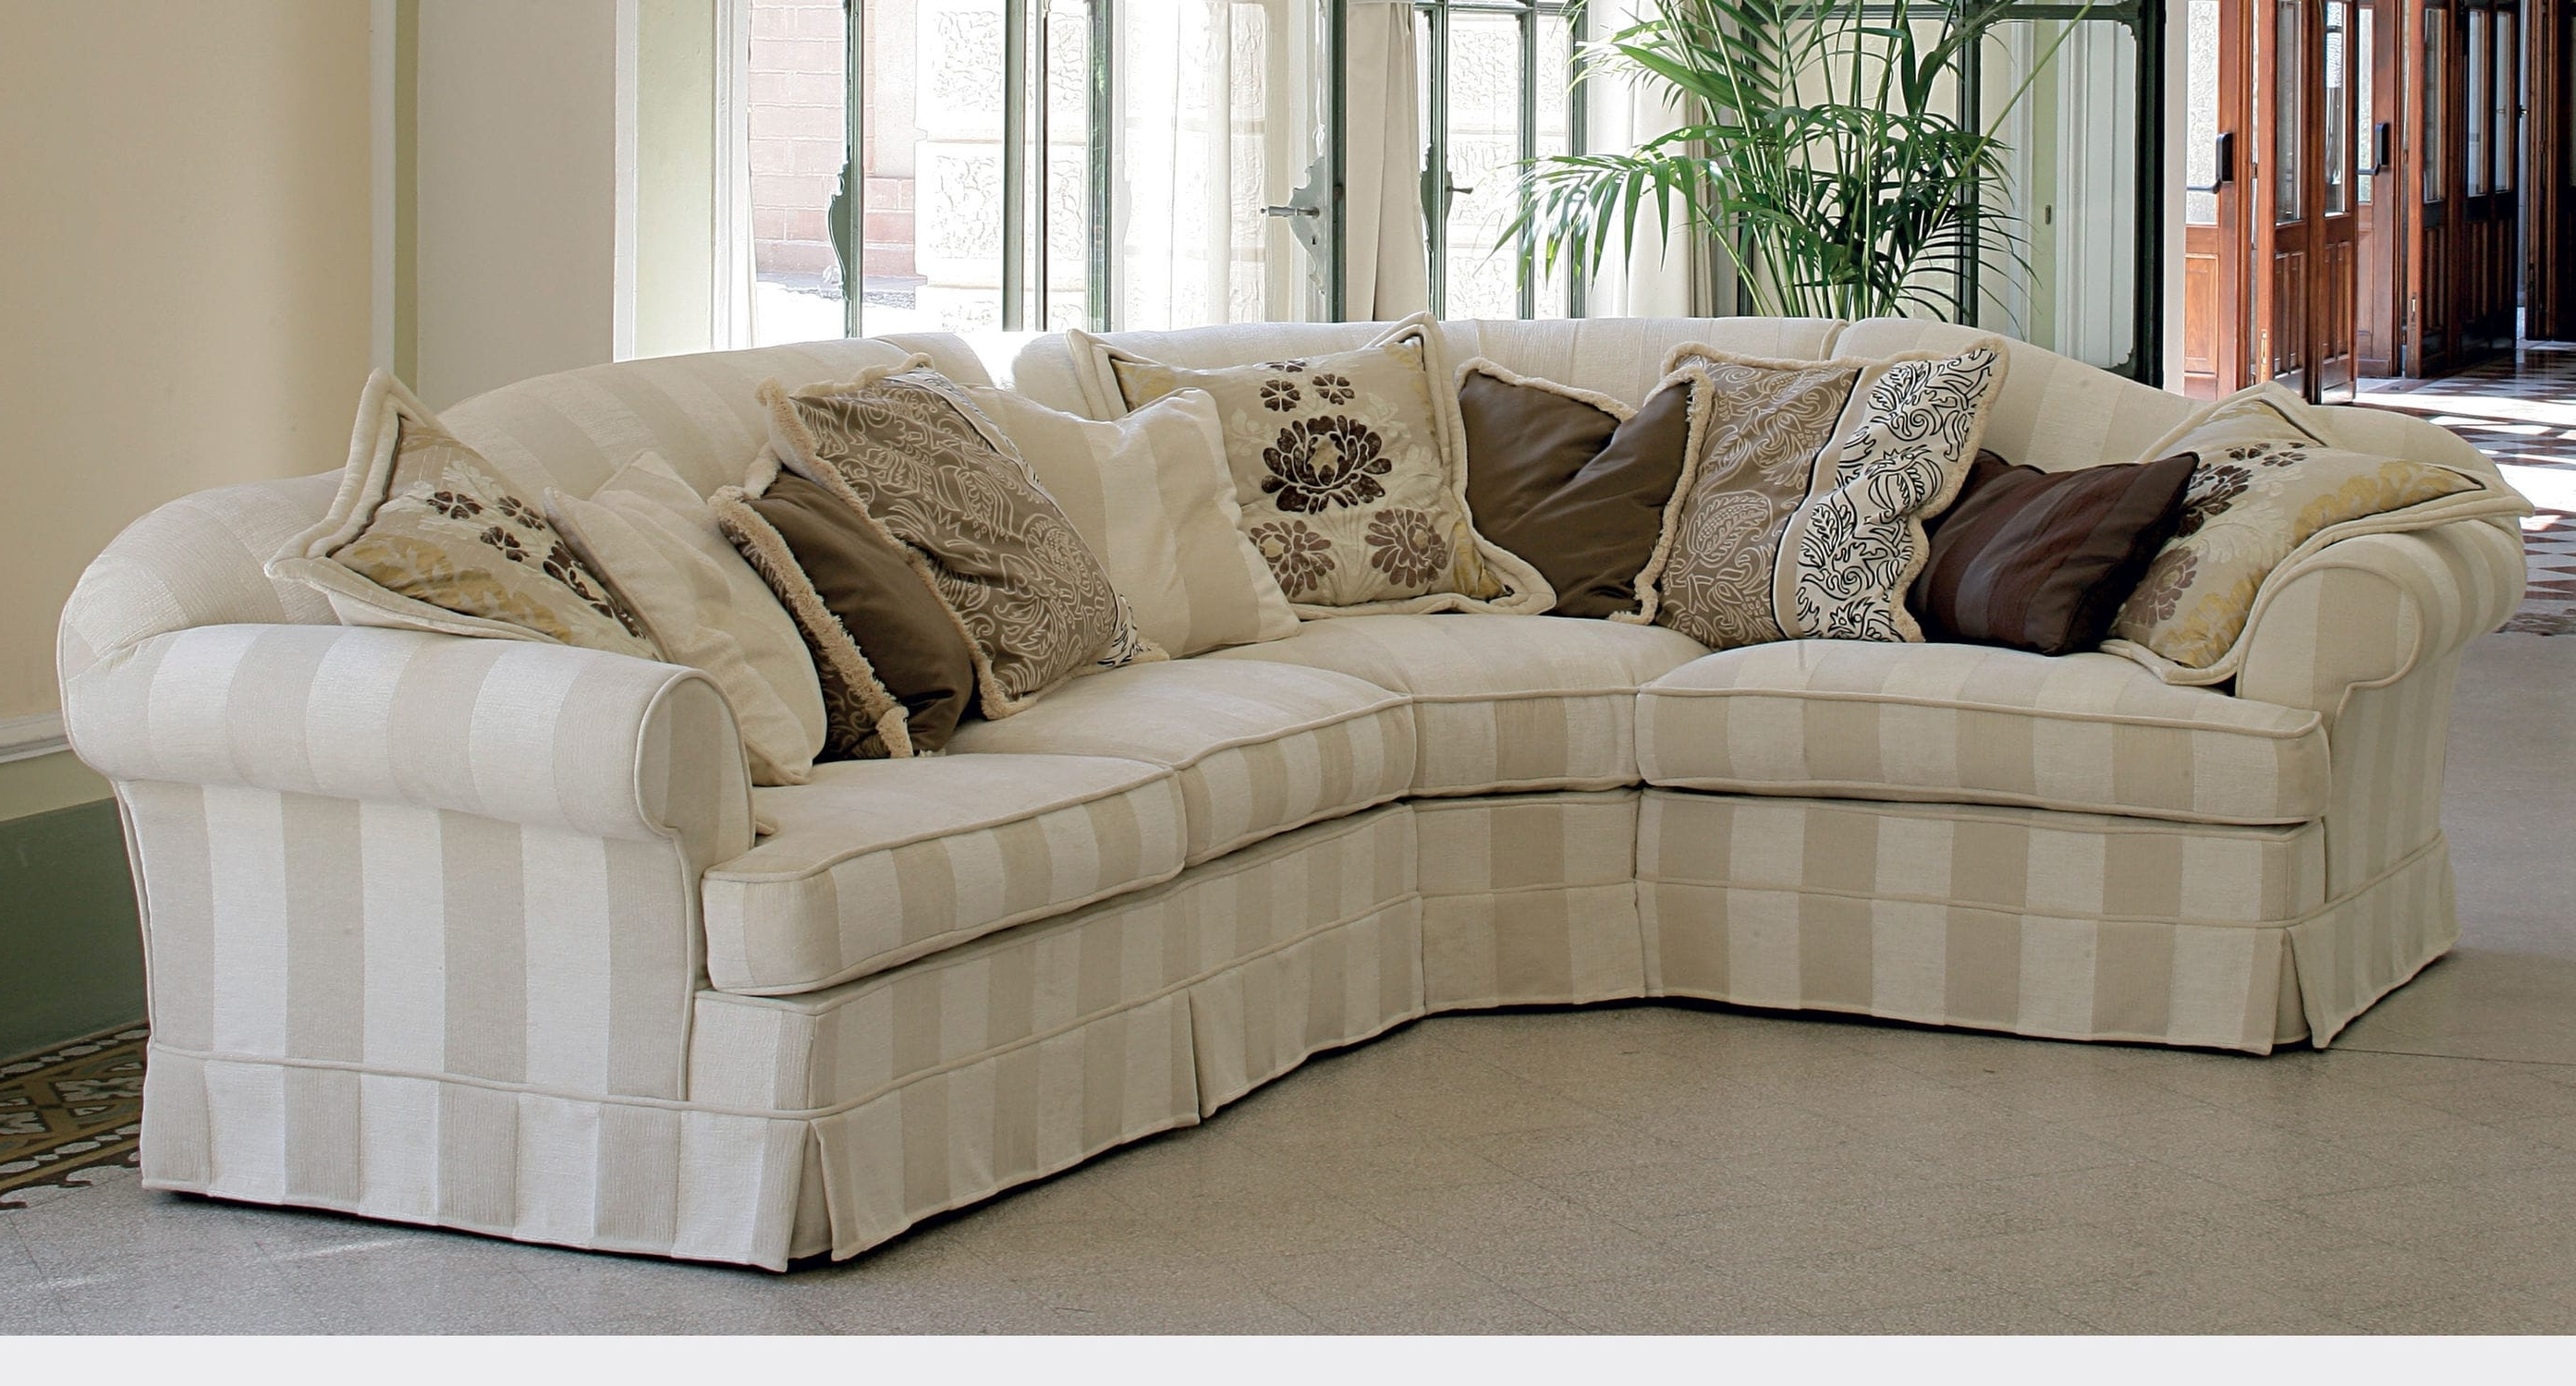 Most Recent Cheap Corner Sofas Fabric Fancy Home Design Inside Sofas With Removable Cover (View 14 of 15)